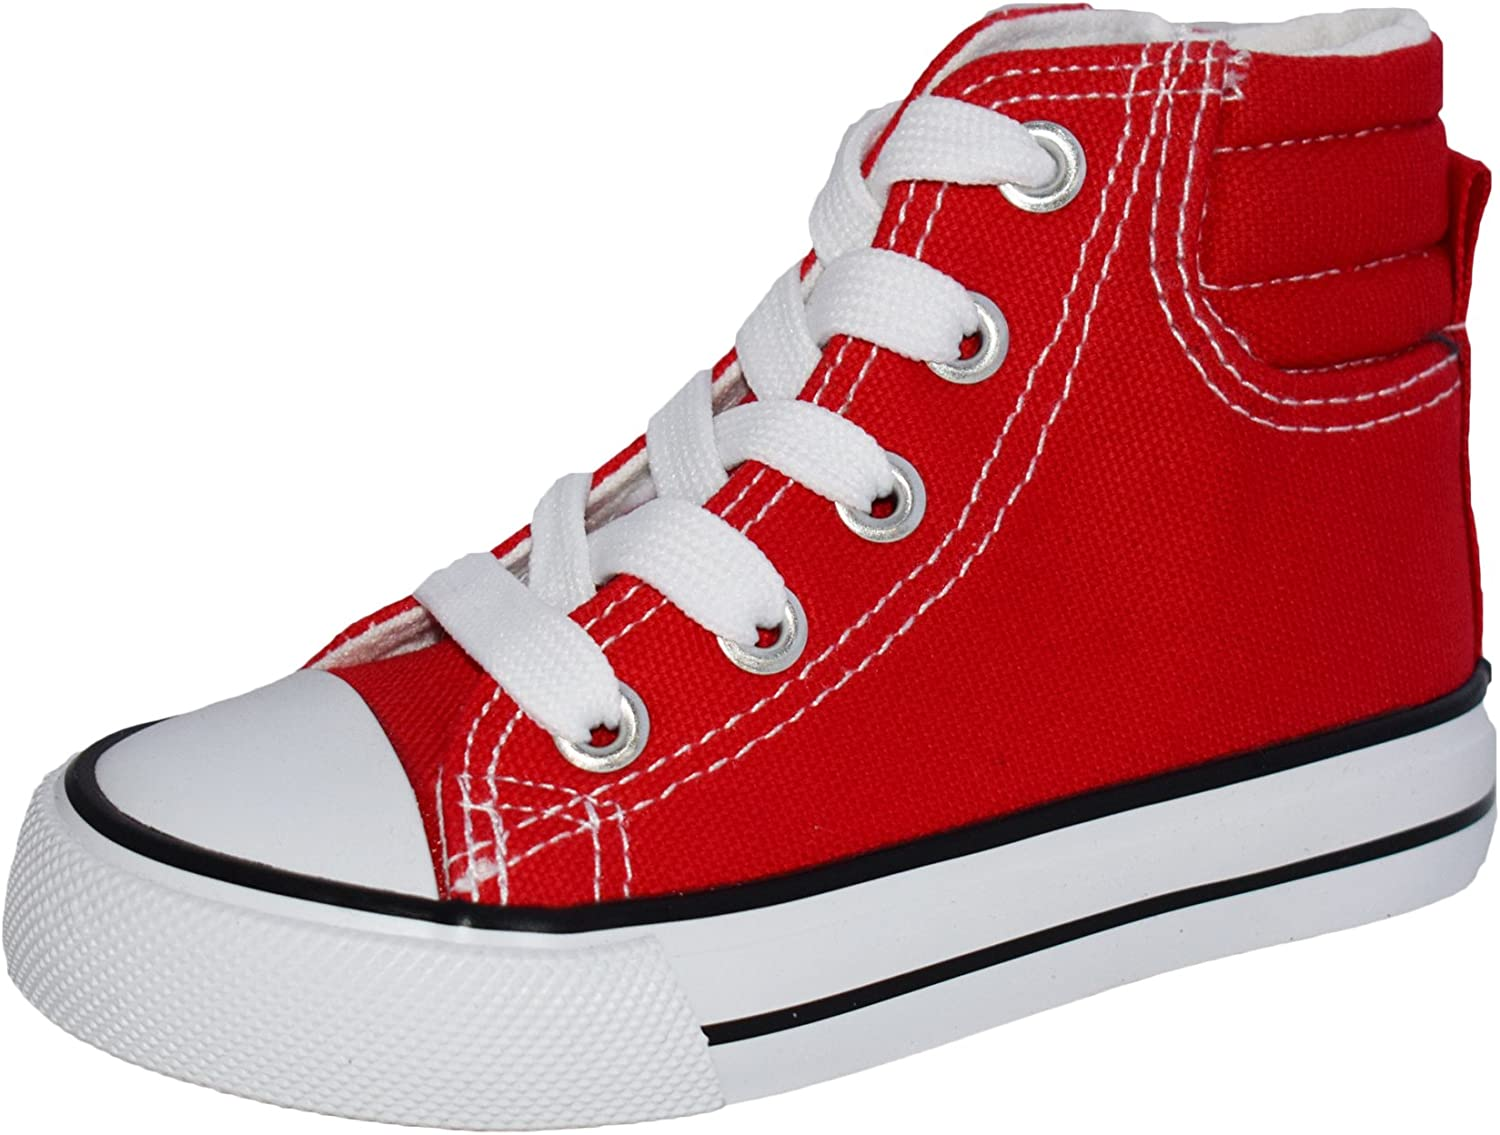 BOYS LACE UP CANVAS TRAINERS RED NAVY CASUAL TRAINER SHOES LAMBRETTA DECADE